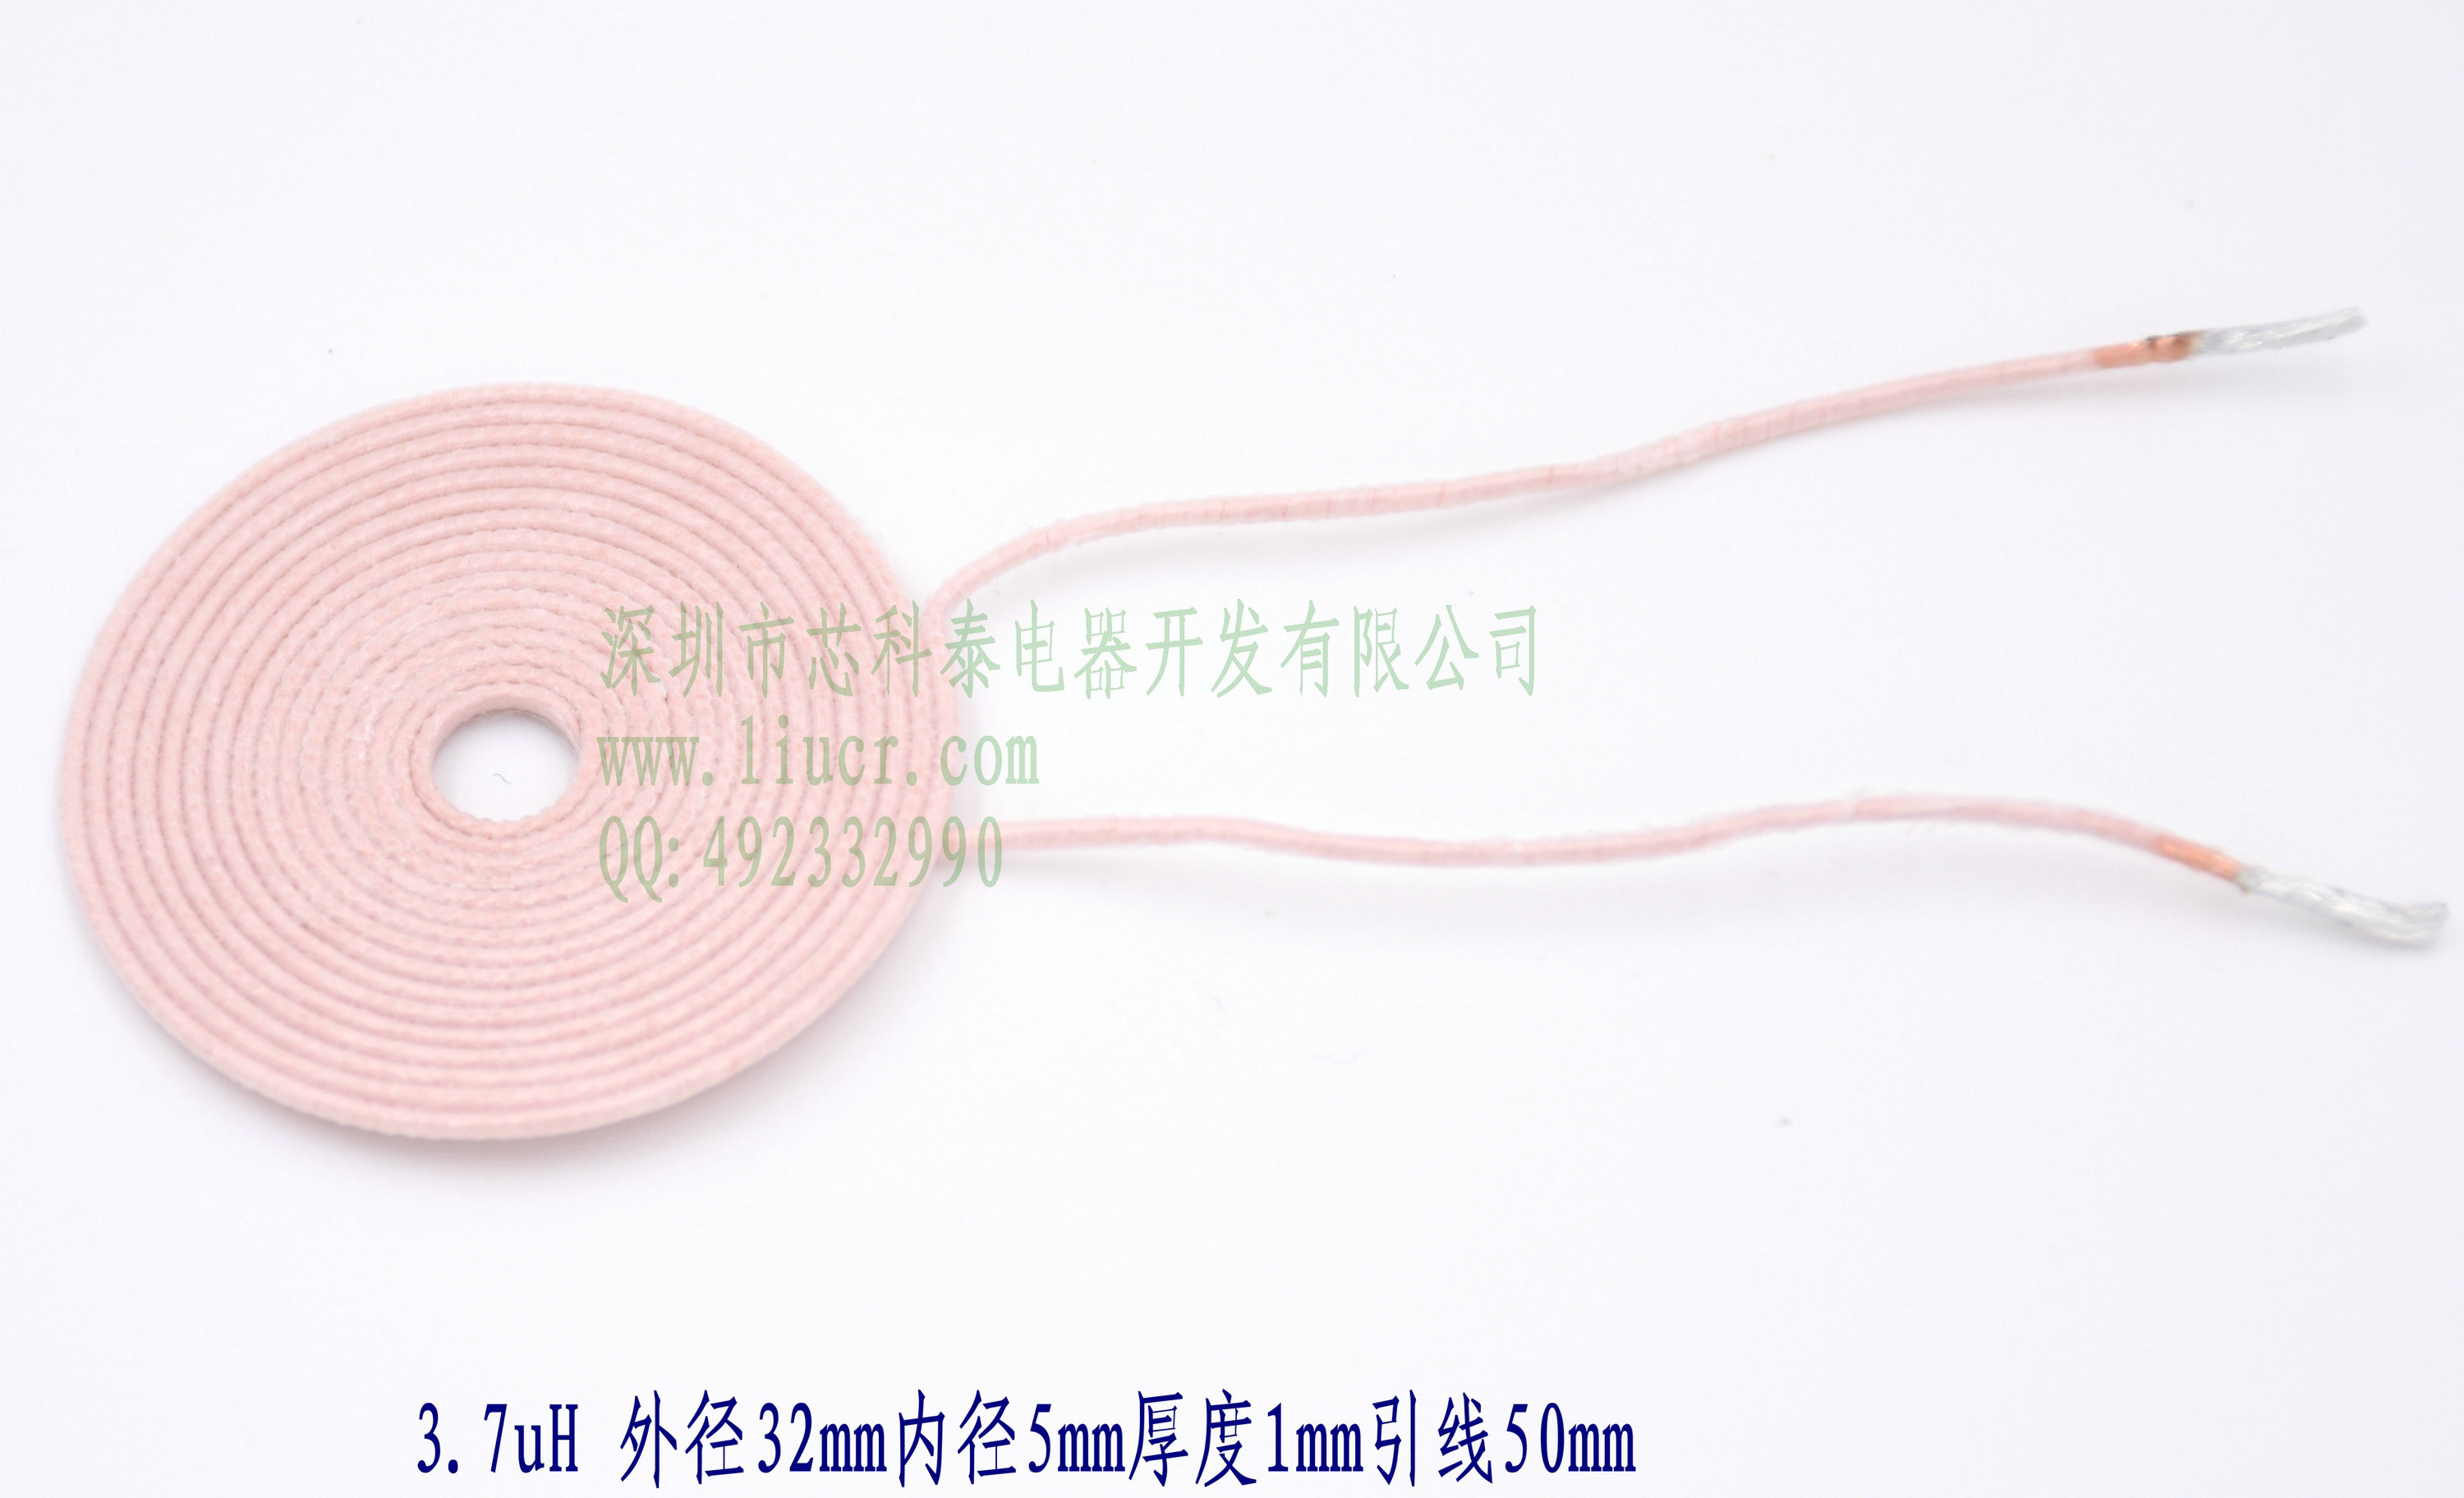 3.7uH 32mm*1mm Wireless Charging  Supply Transmission Large Current Coil